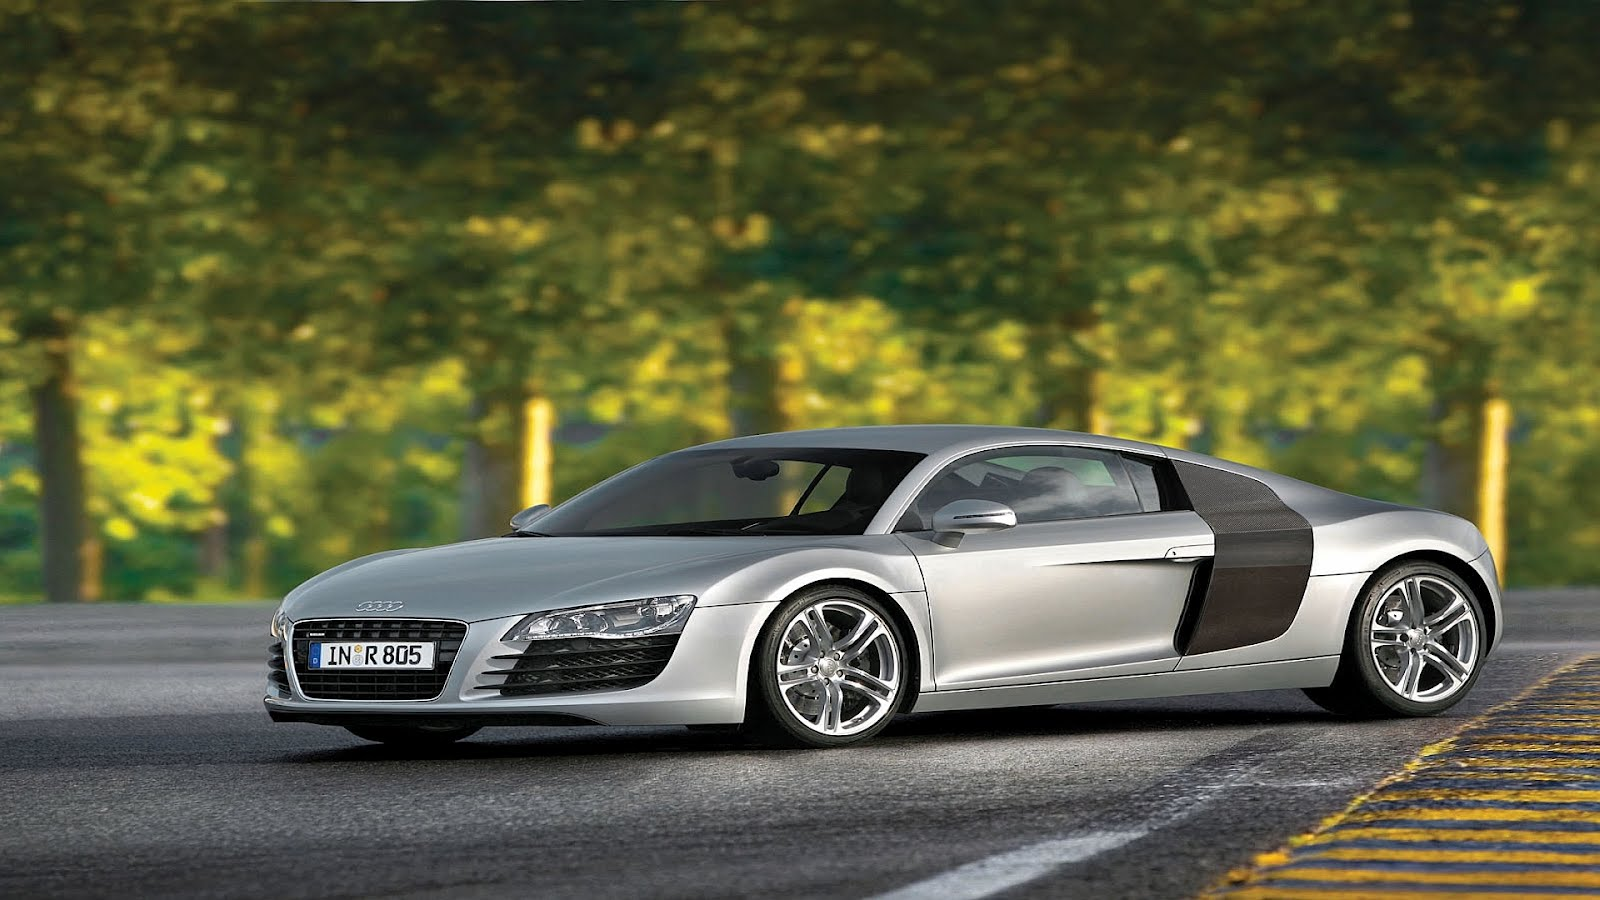 Incroyable Audi Sports Car Pic_2012